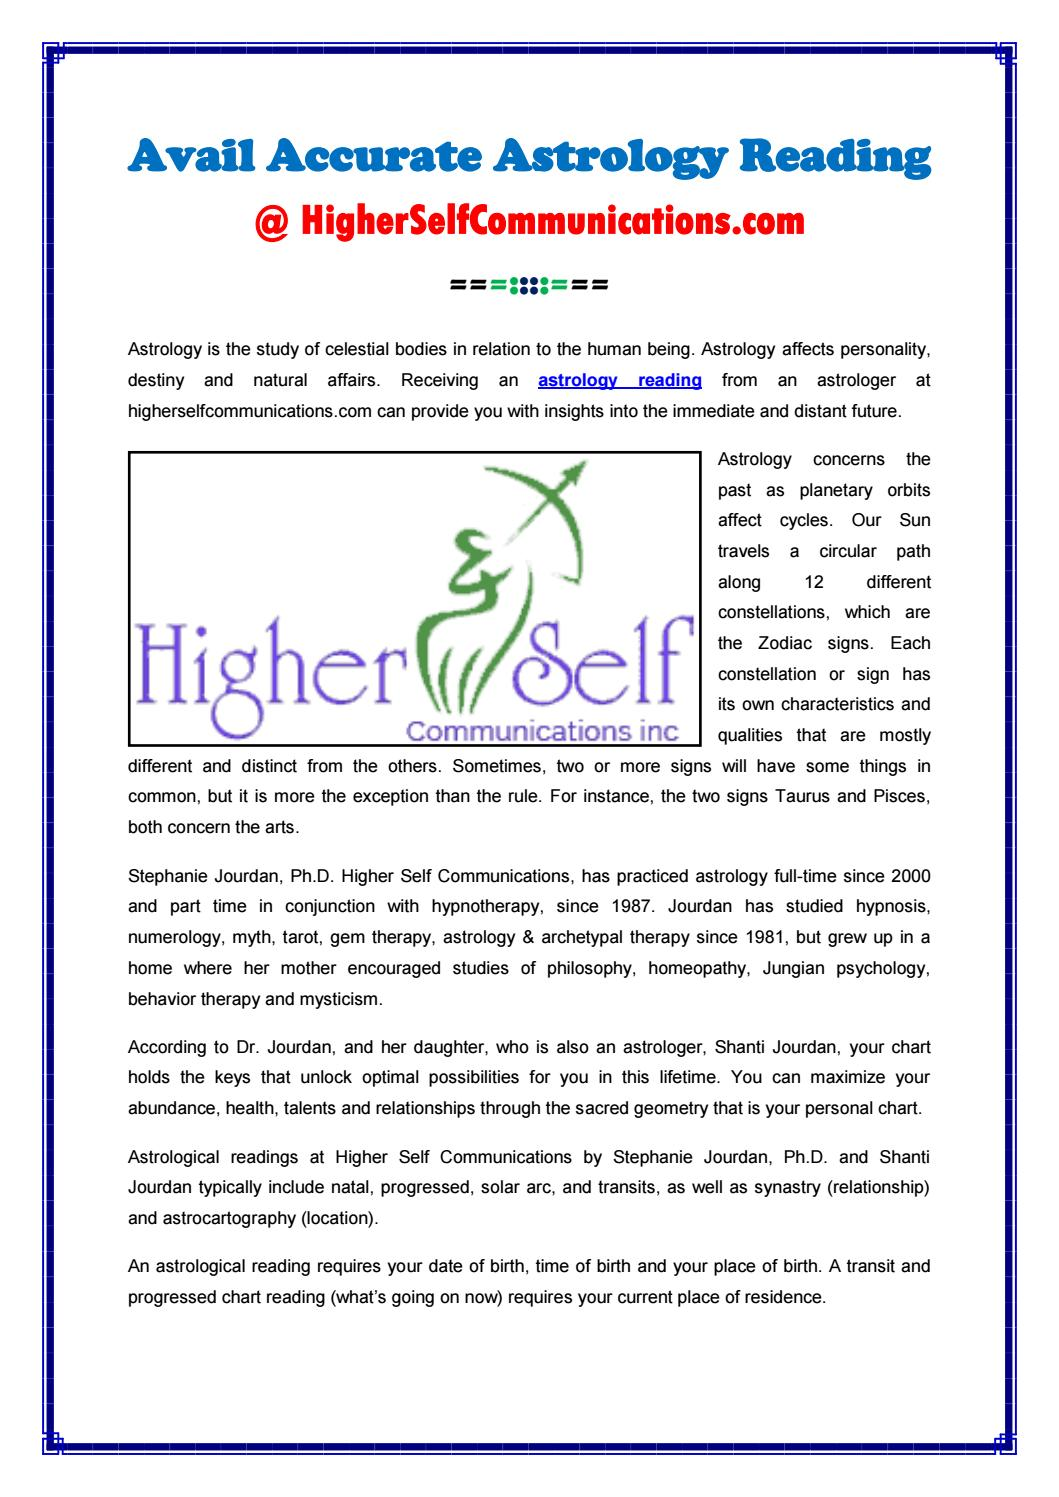 Astrology Reading At HigherSelfCommunications com by Higher